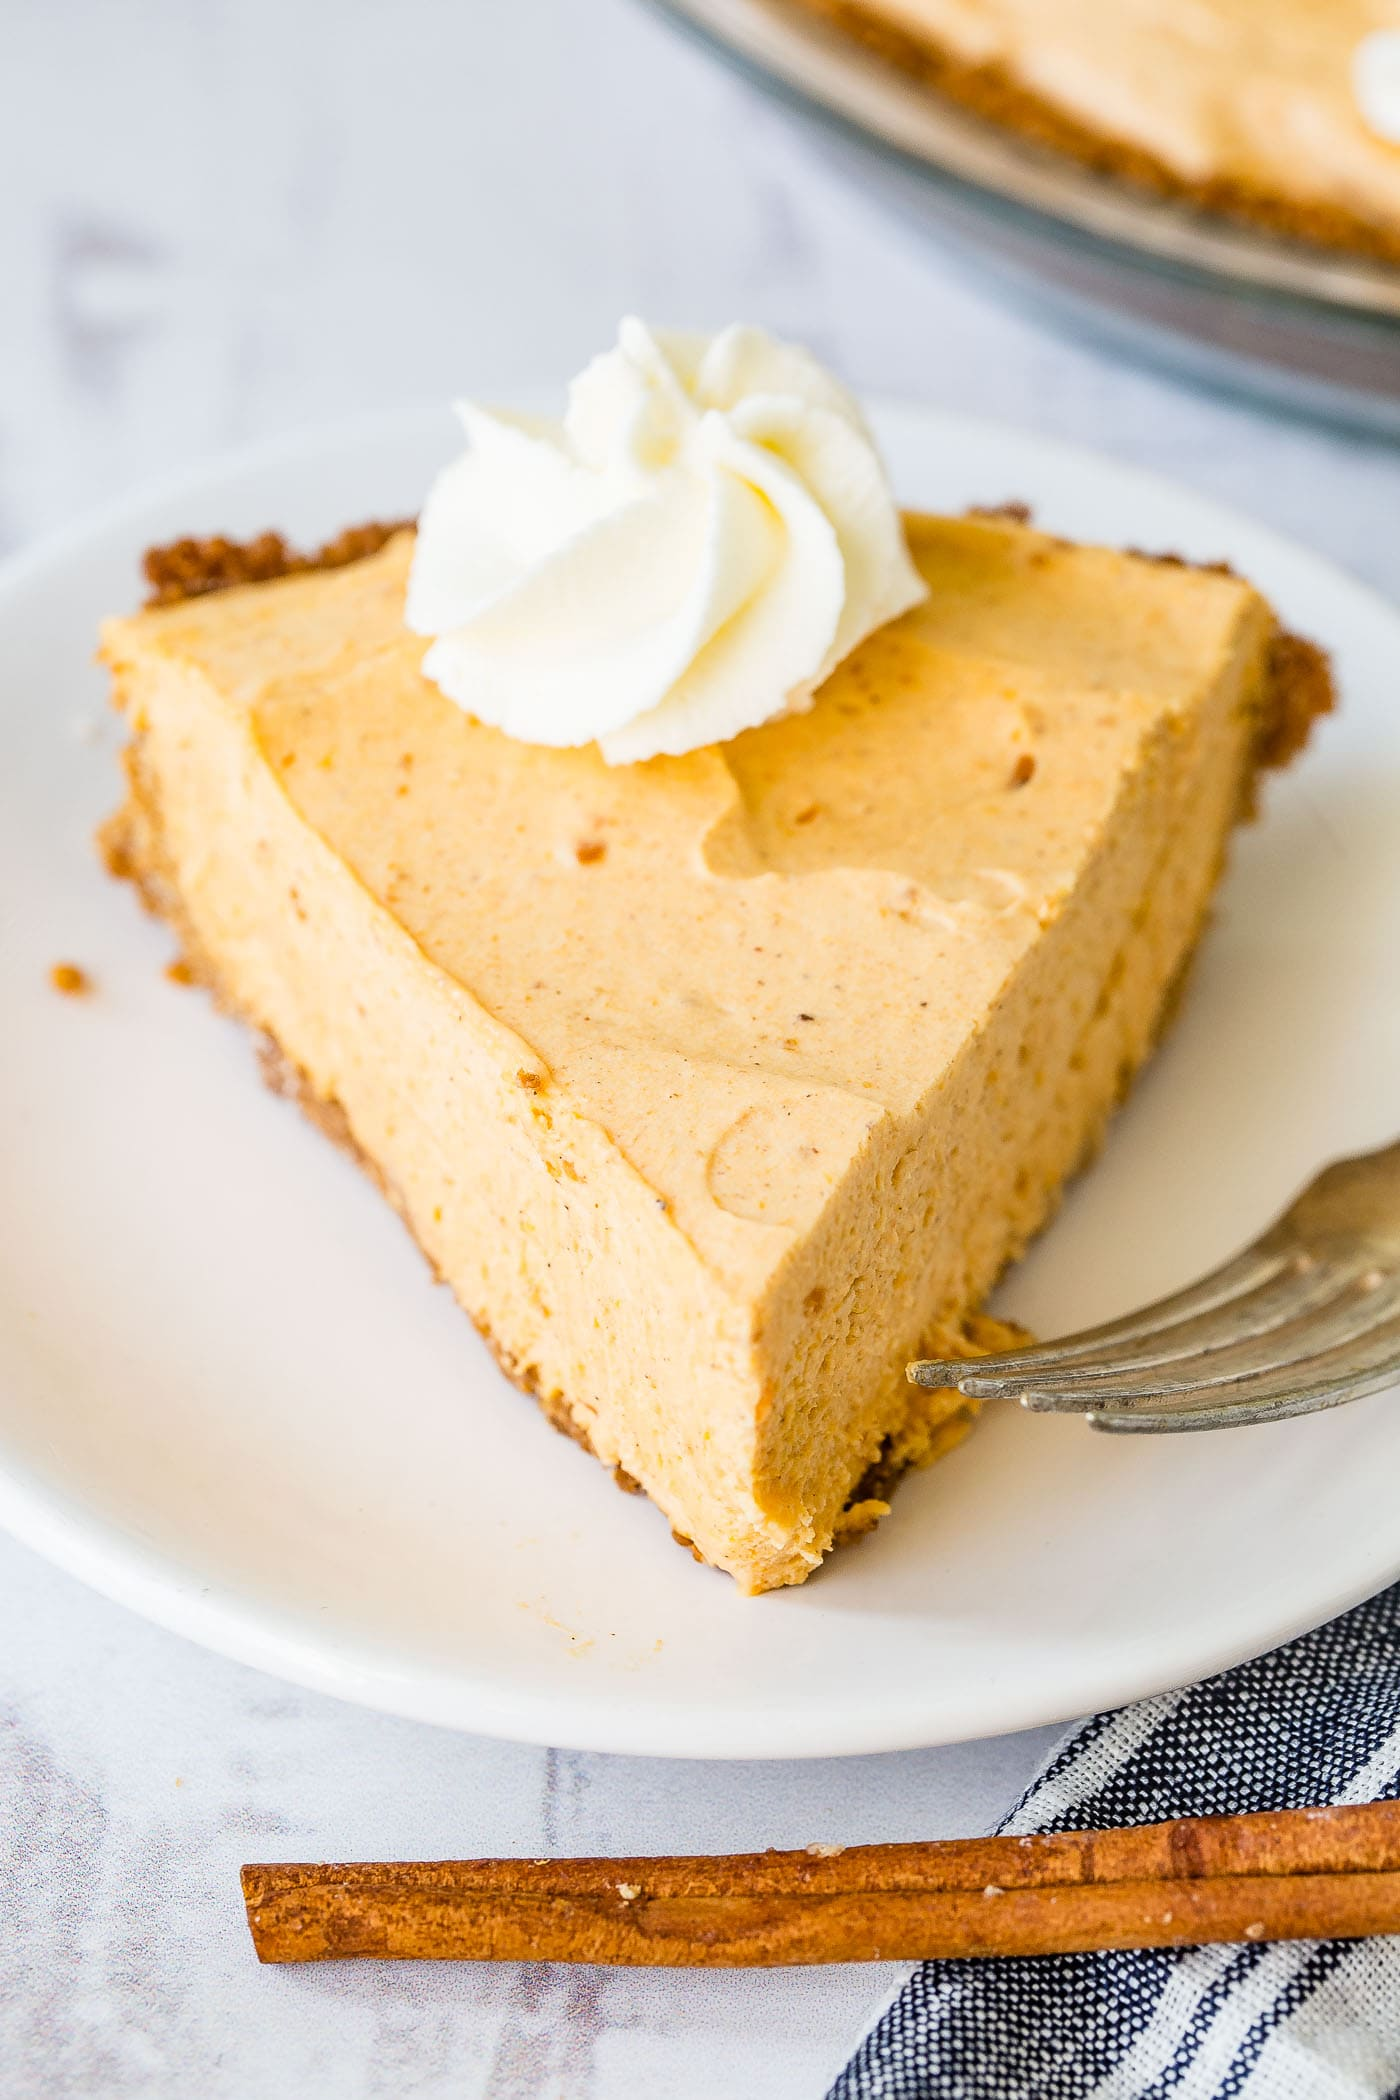 A photo of a slice of no bake pumpkin pie with a swirl of whipped cream on top.